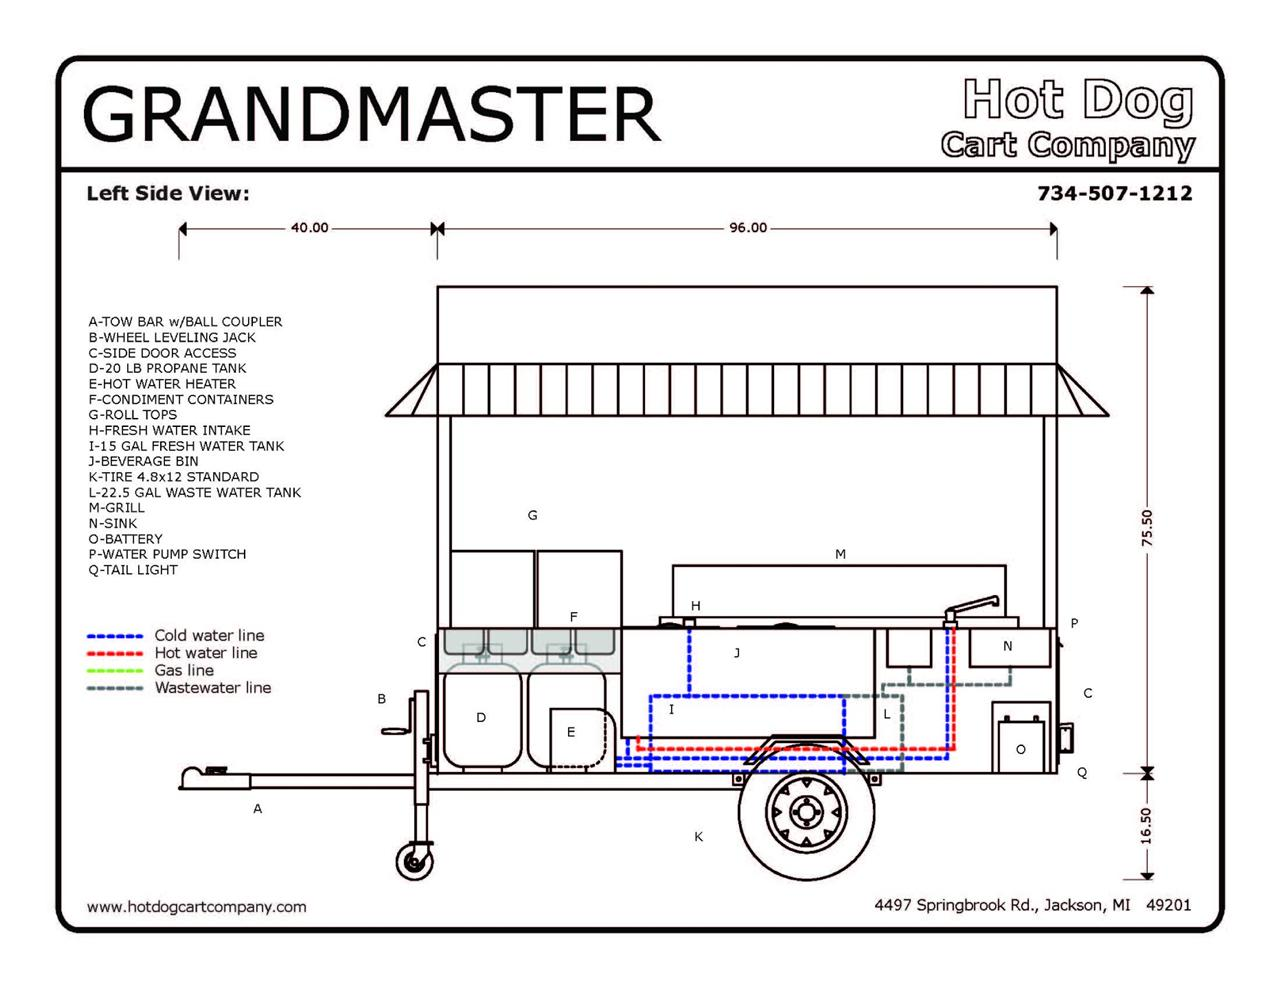 GRAND MASTER HOT DOG CART VENDING CONCESSION TRAILER EBay